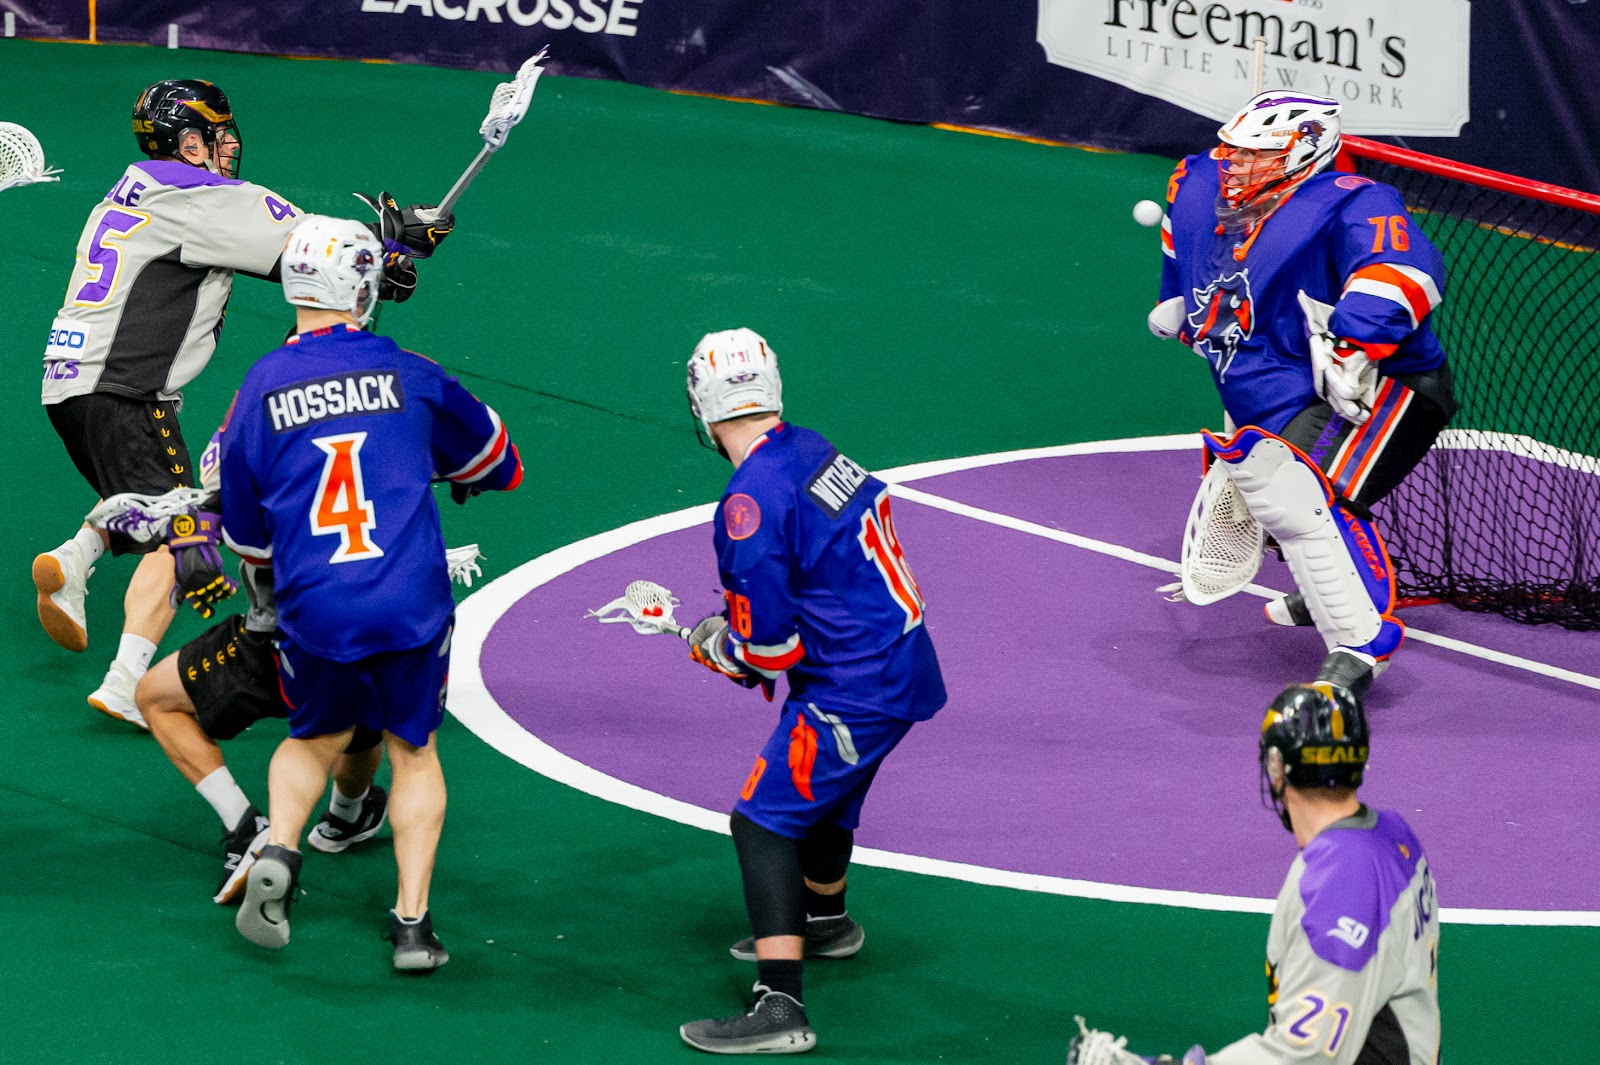 Image of goalie standing up to the ball as it is shot on net